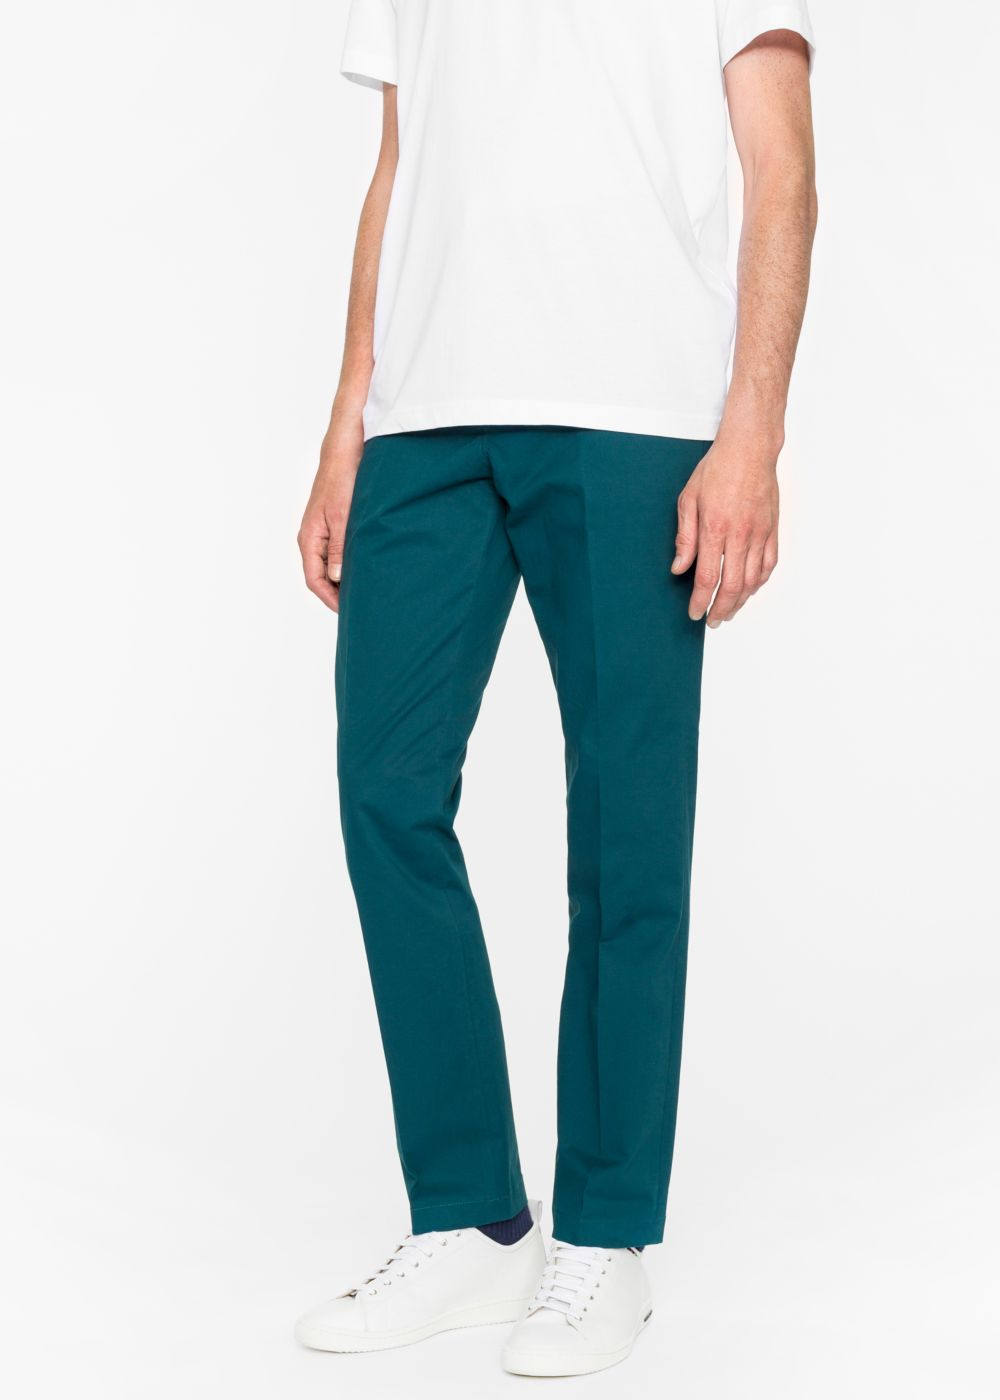 Paul Smith Men's Mid-Fit Dark Teal Stretch-Cotton Chinos